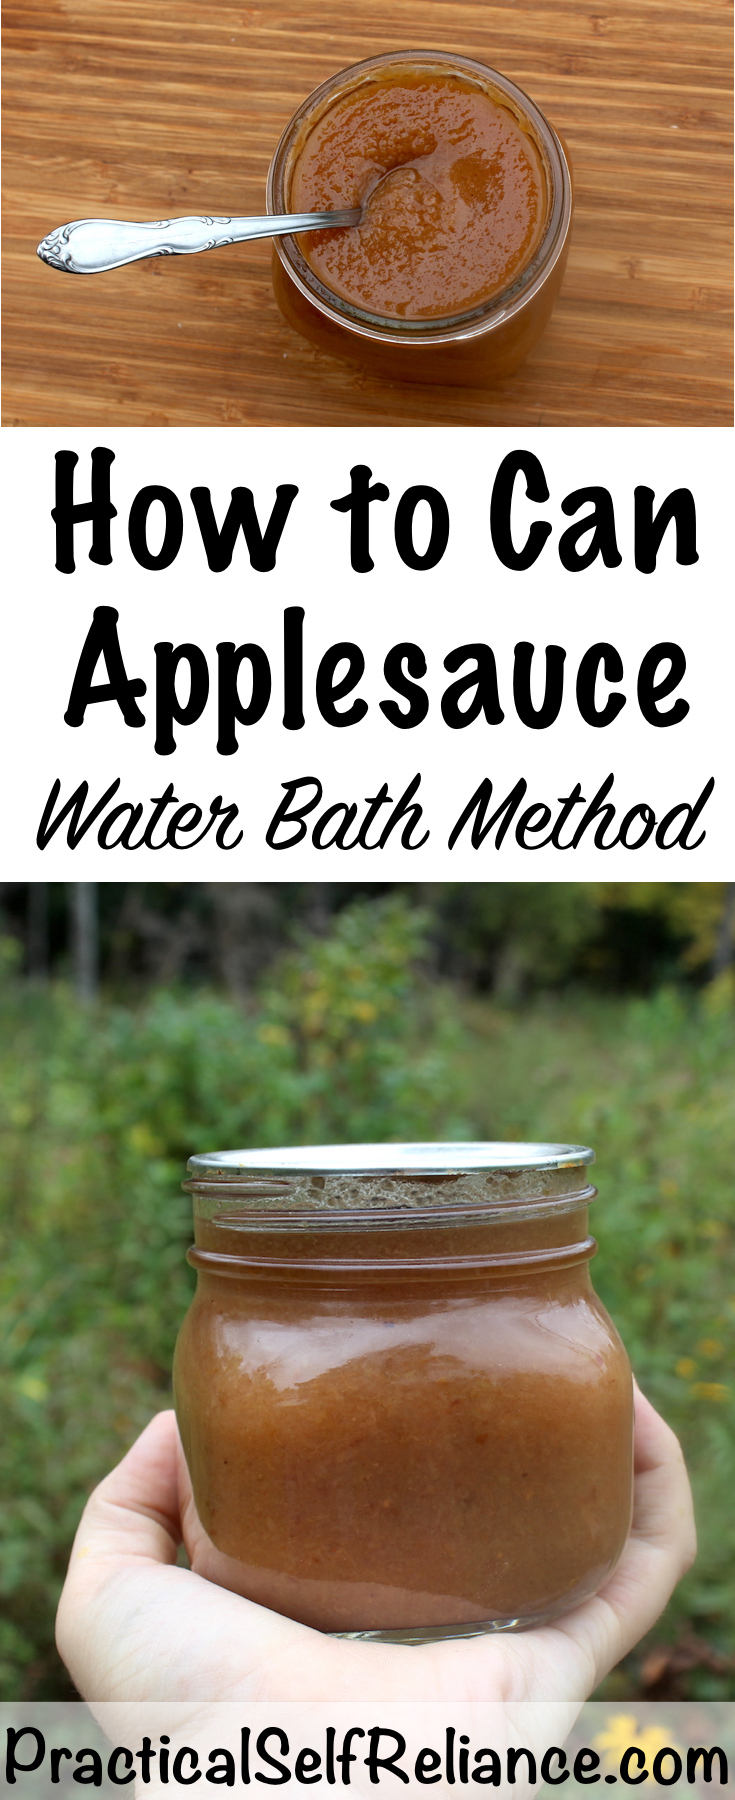 How to Can Applesauce - Water Bath Method